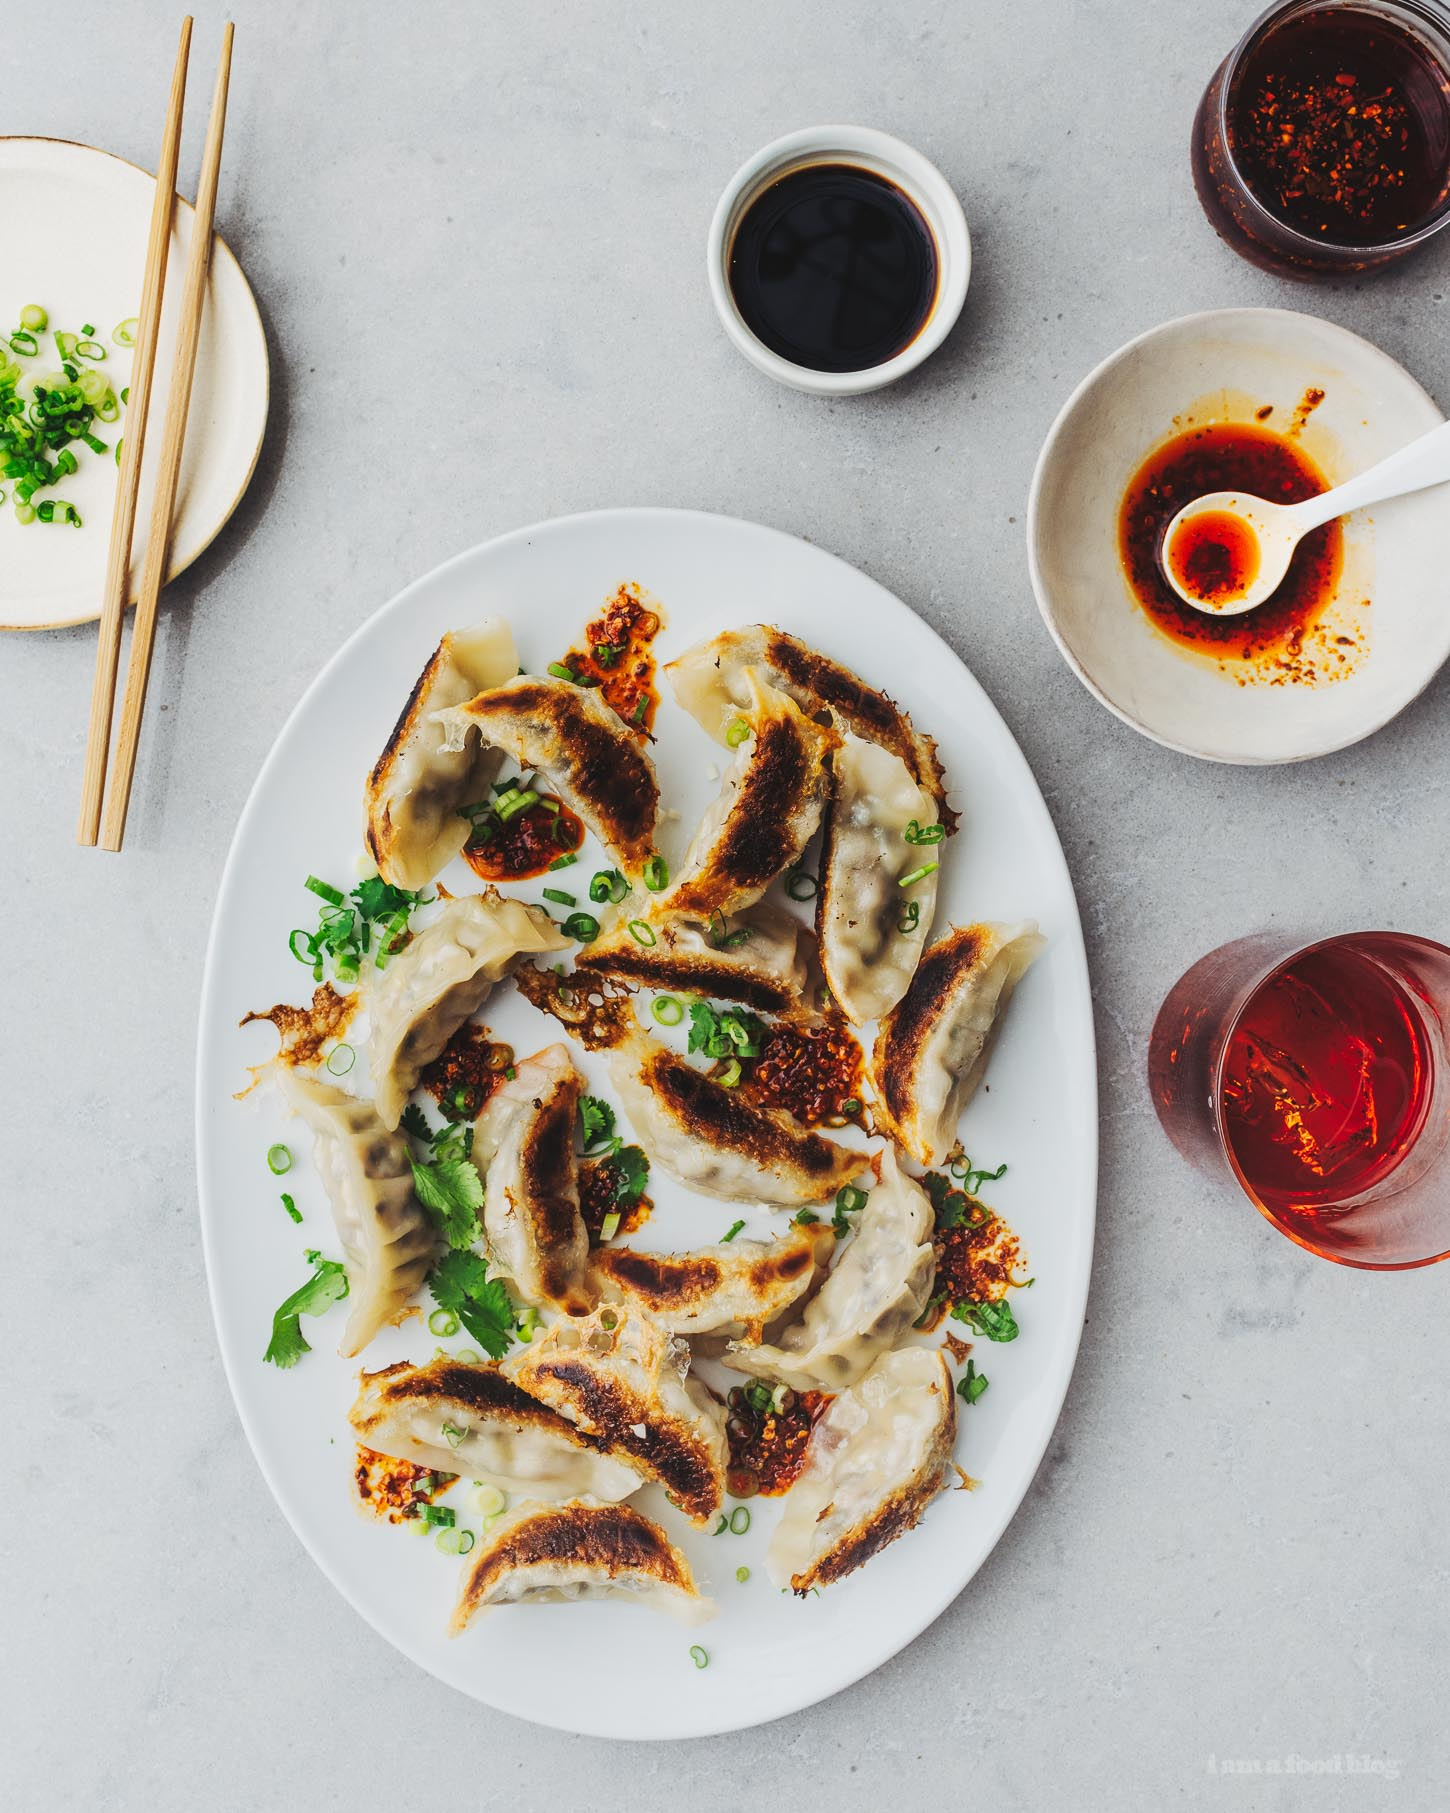 Homemade Pork and Garlic Chinese Potsticker Dumpling Recipe | www.iamafoodblog.com